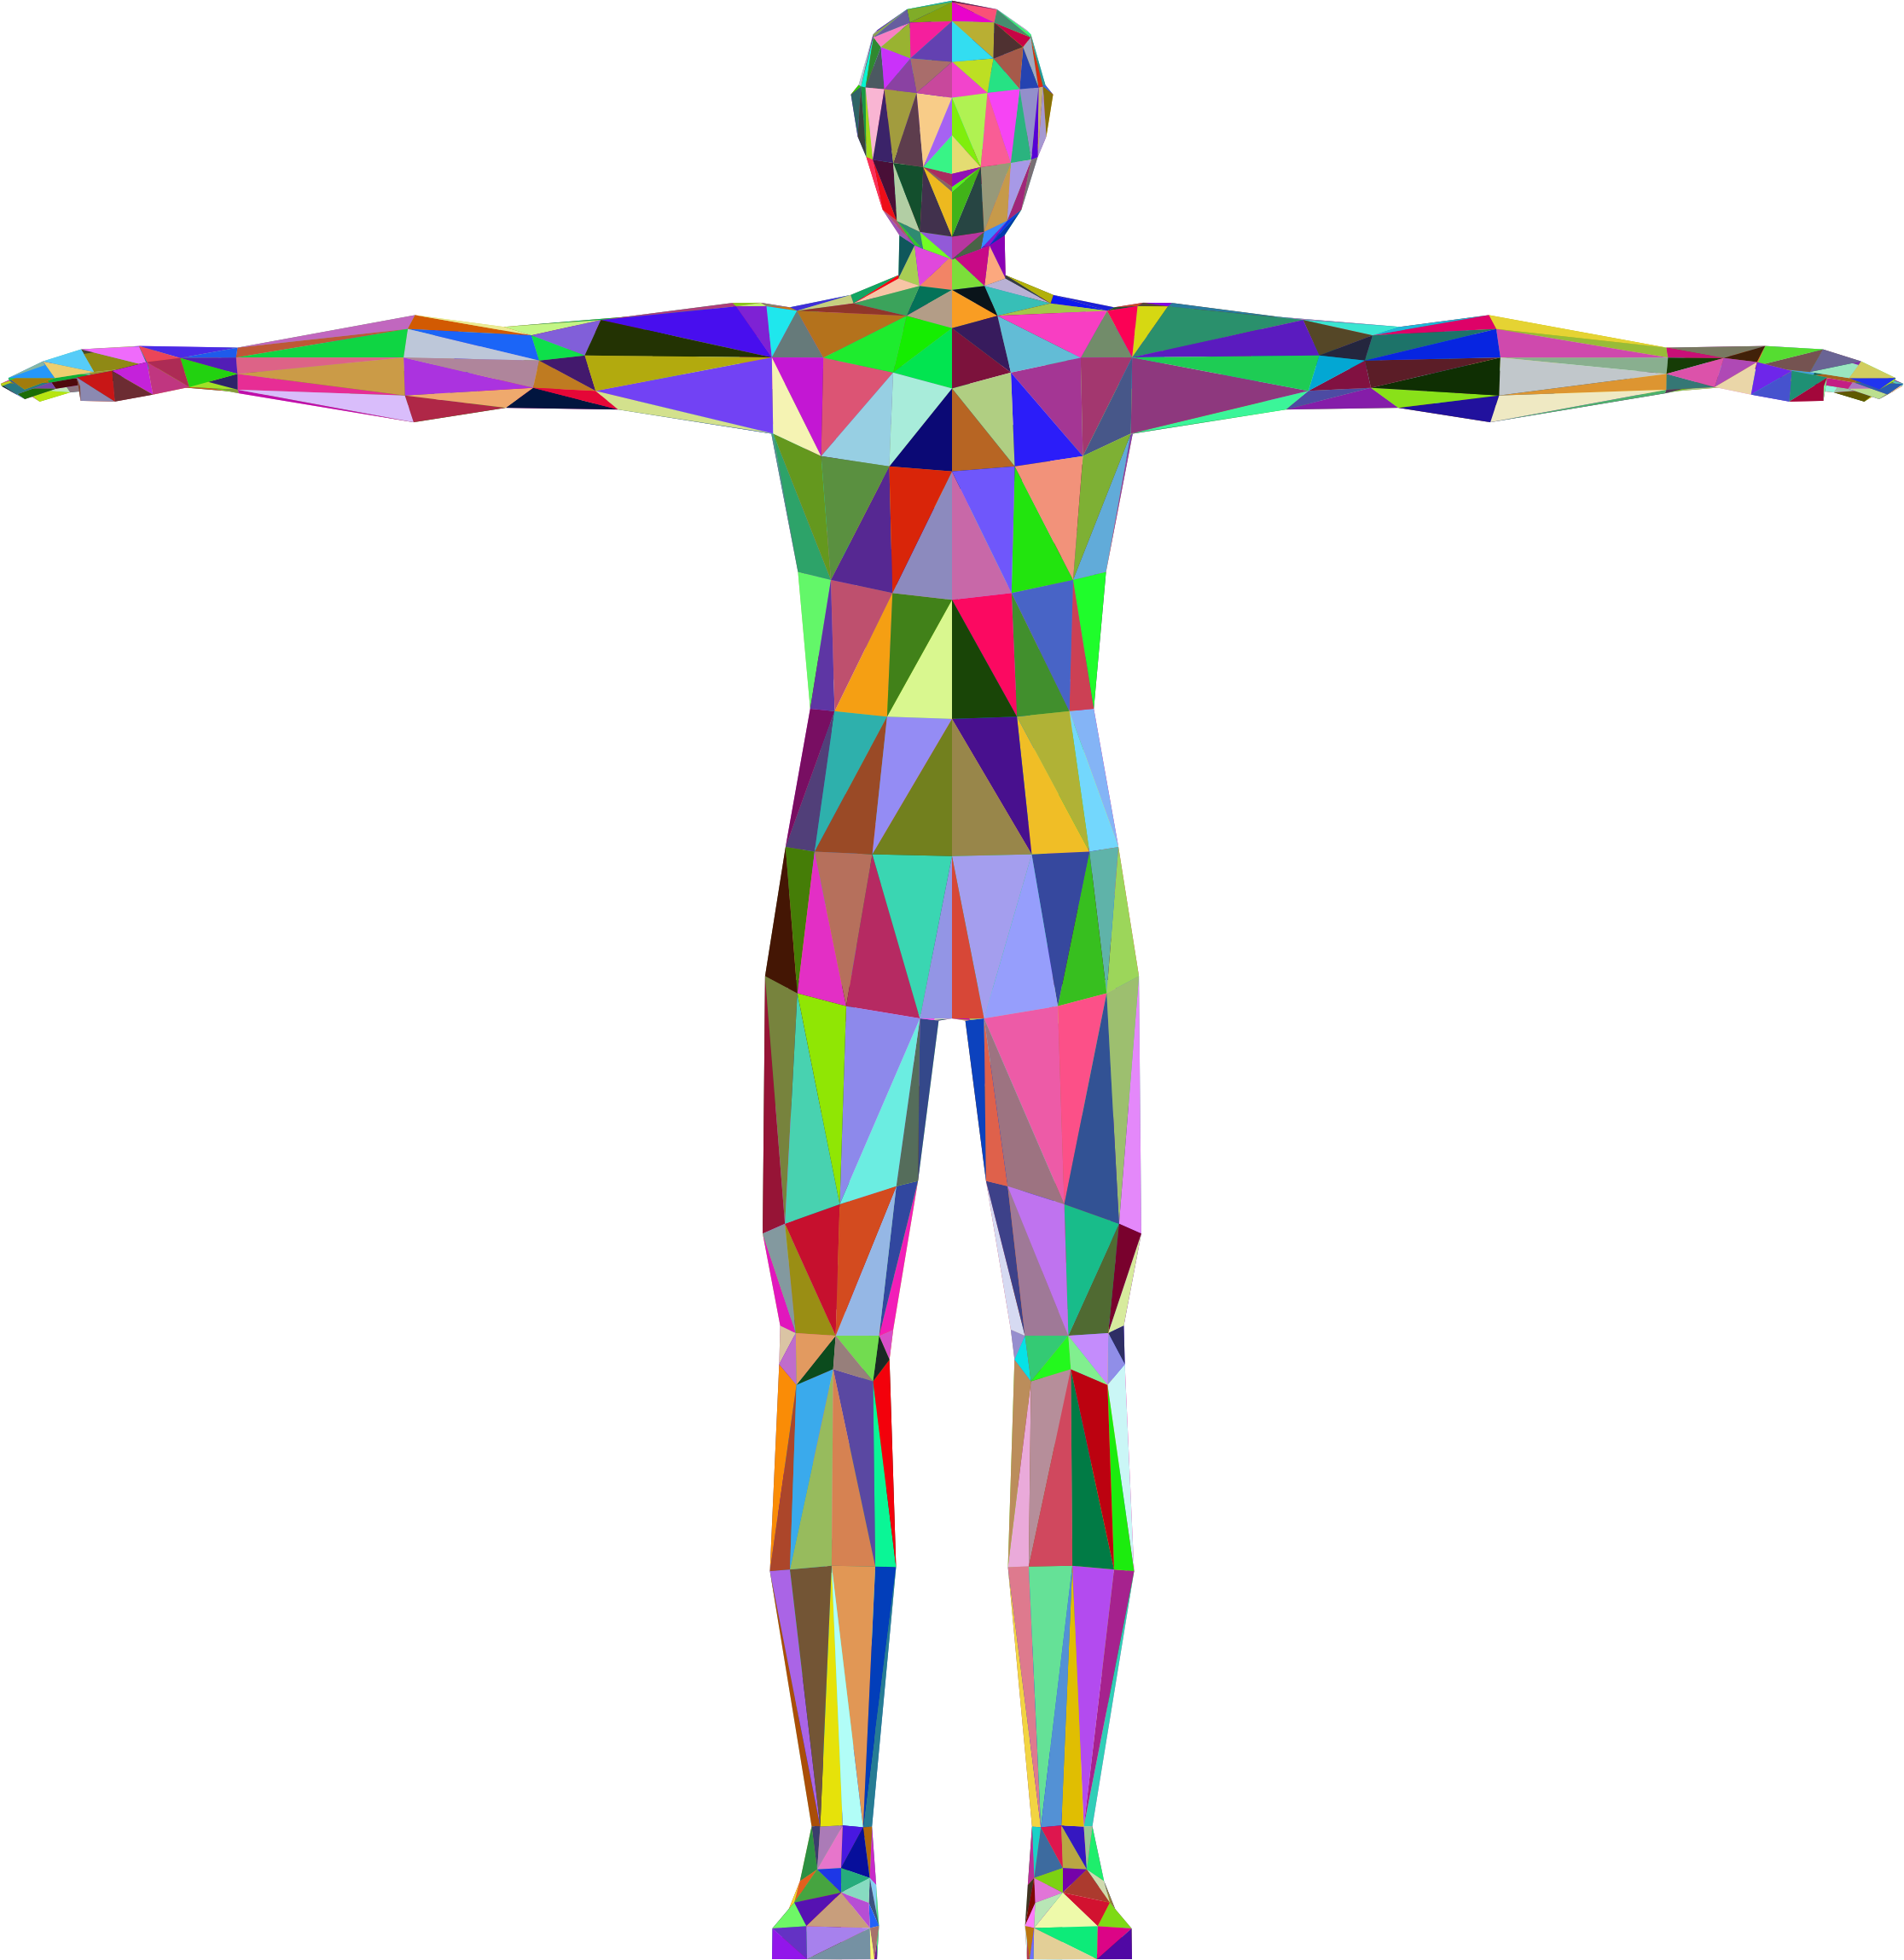 Human clipart 3d human. Prismatic low poly male